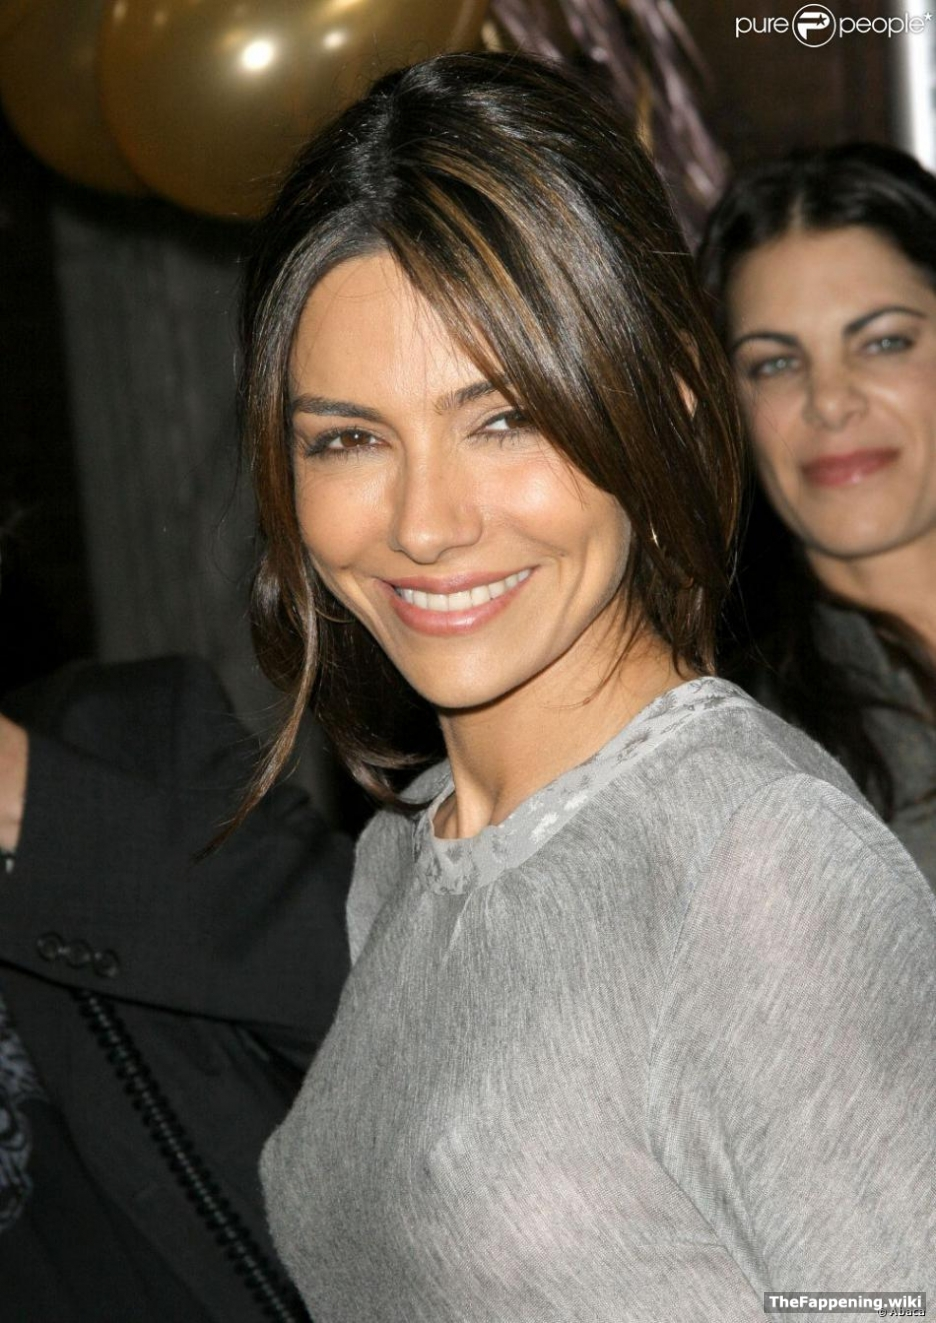 Agree, this naked vanessa marcil nude opinion